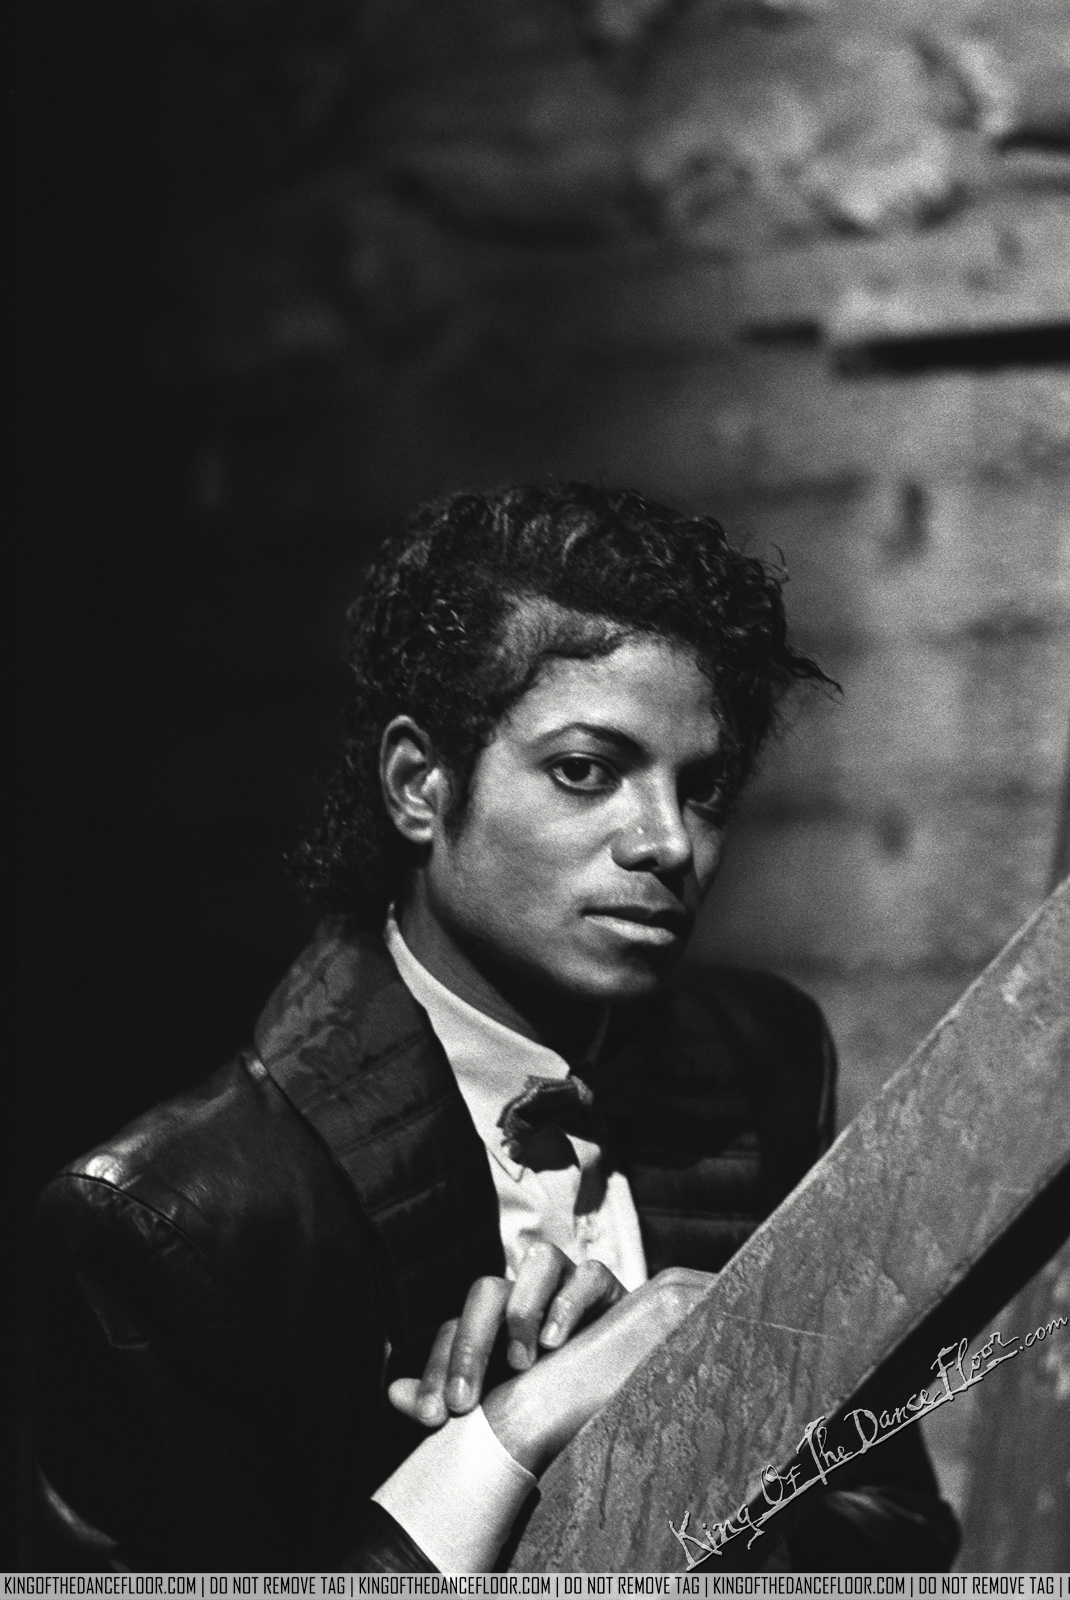 YOU'RE MY PAST HISTORY AND FUTURE MICHAEL.MY FOREVER